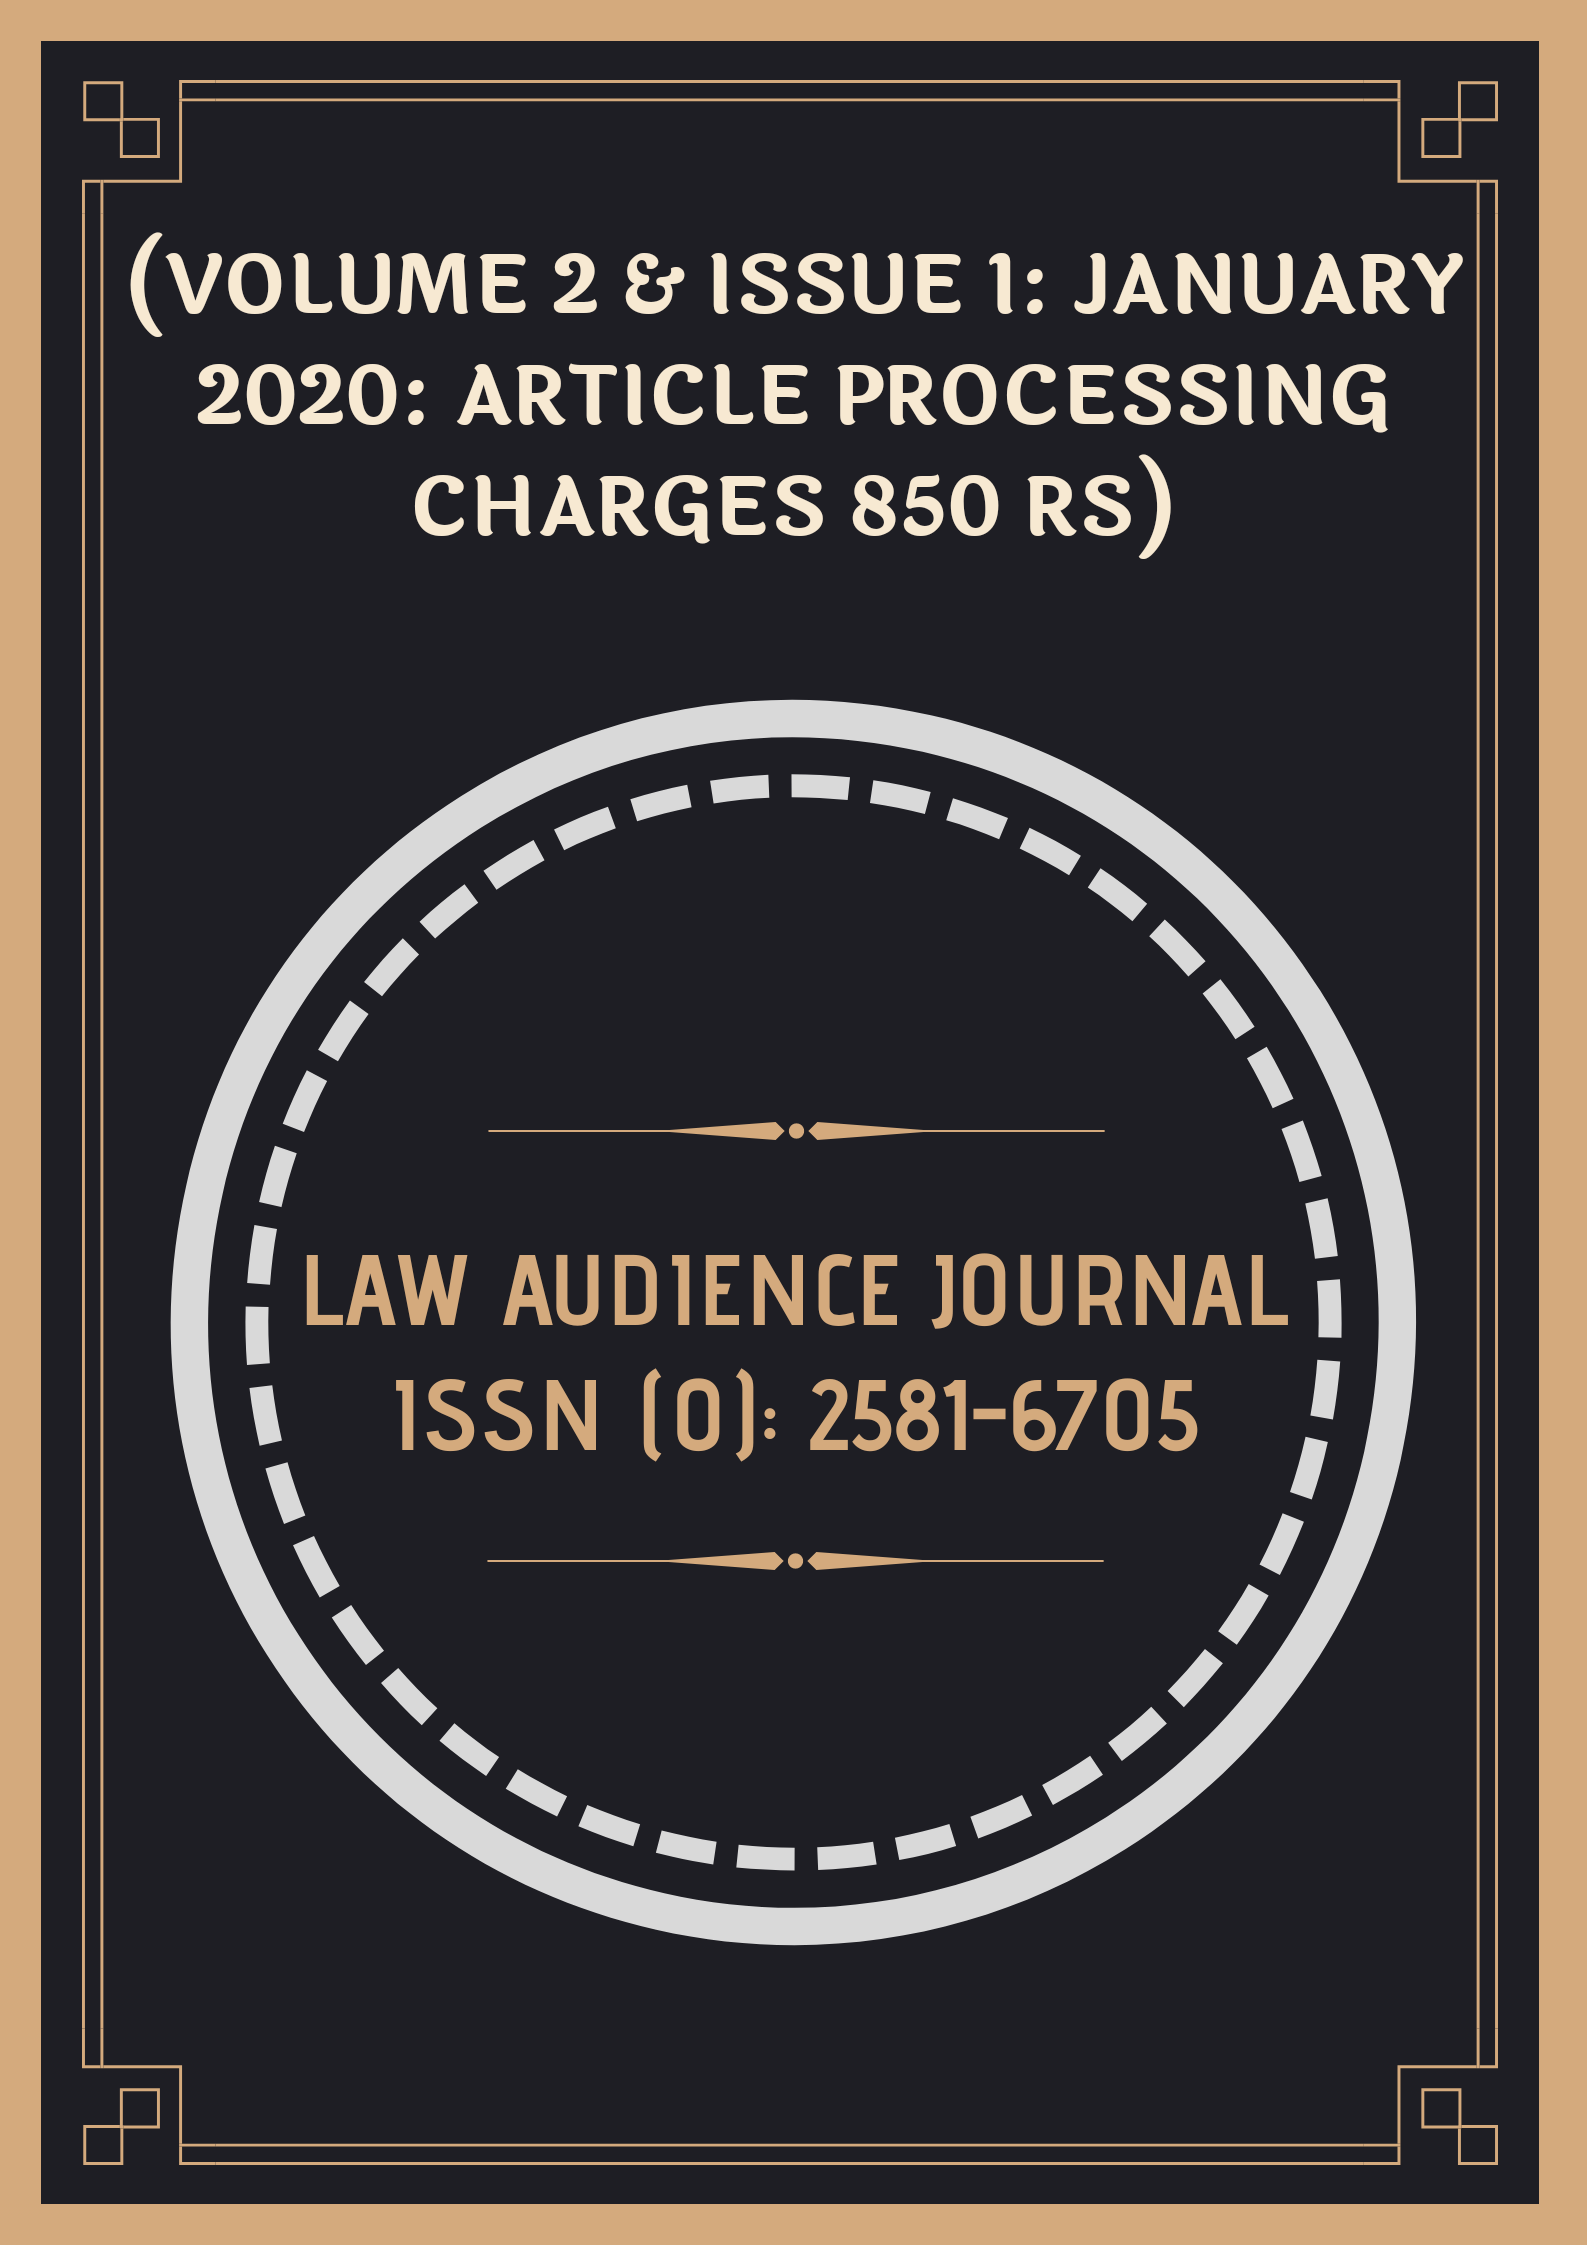 CALL FOR PAPERS: LAW AUDIENCE JOURNAL: VOLUME 2 & ISSUE 1 JANUARY 2020: